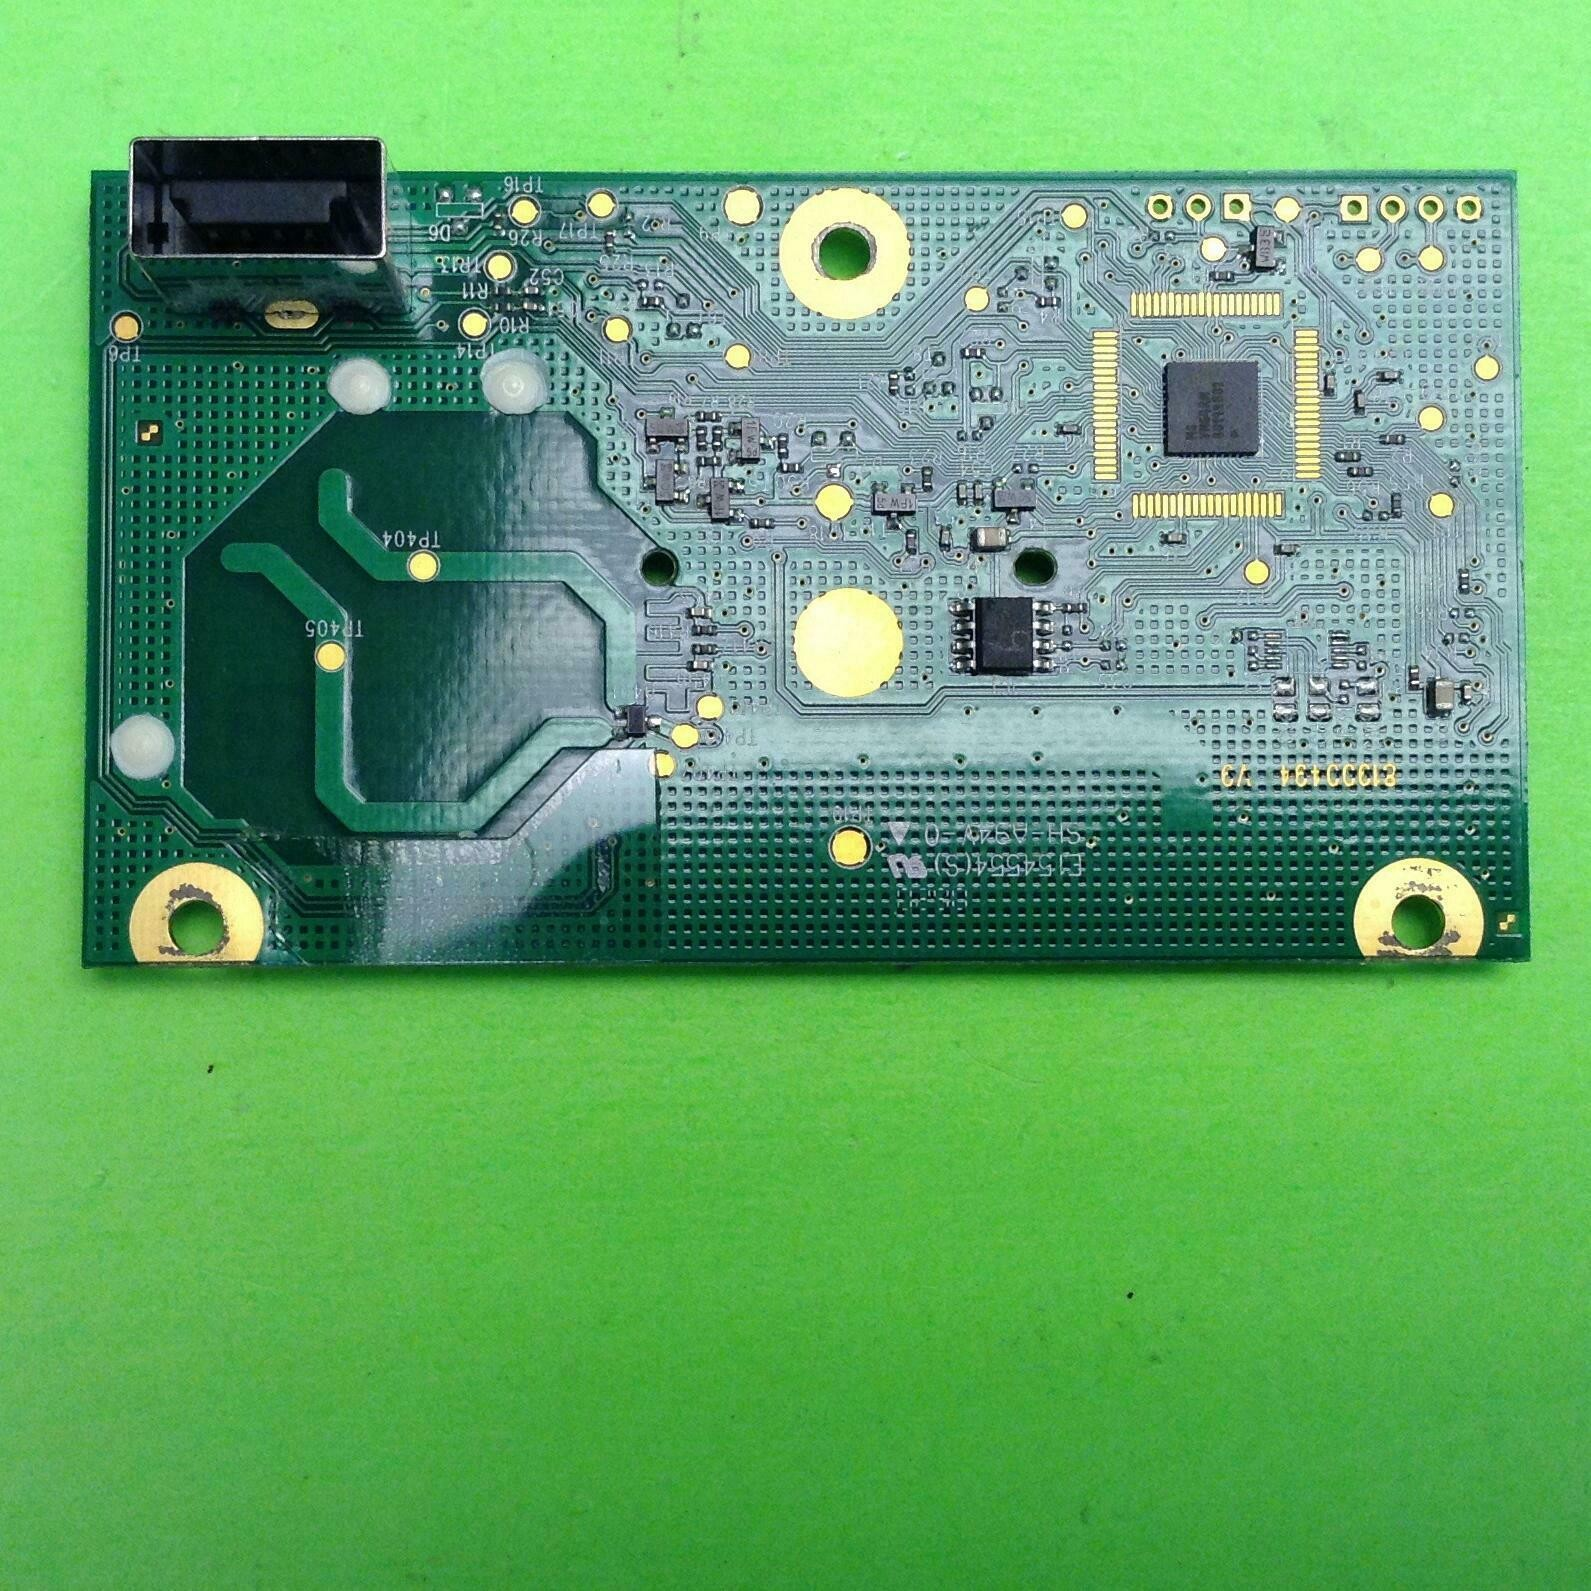 Details about Microsoft Xbox 360 Rf Module and Power Button Board X 002 X 010